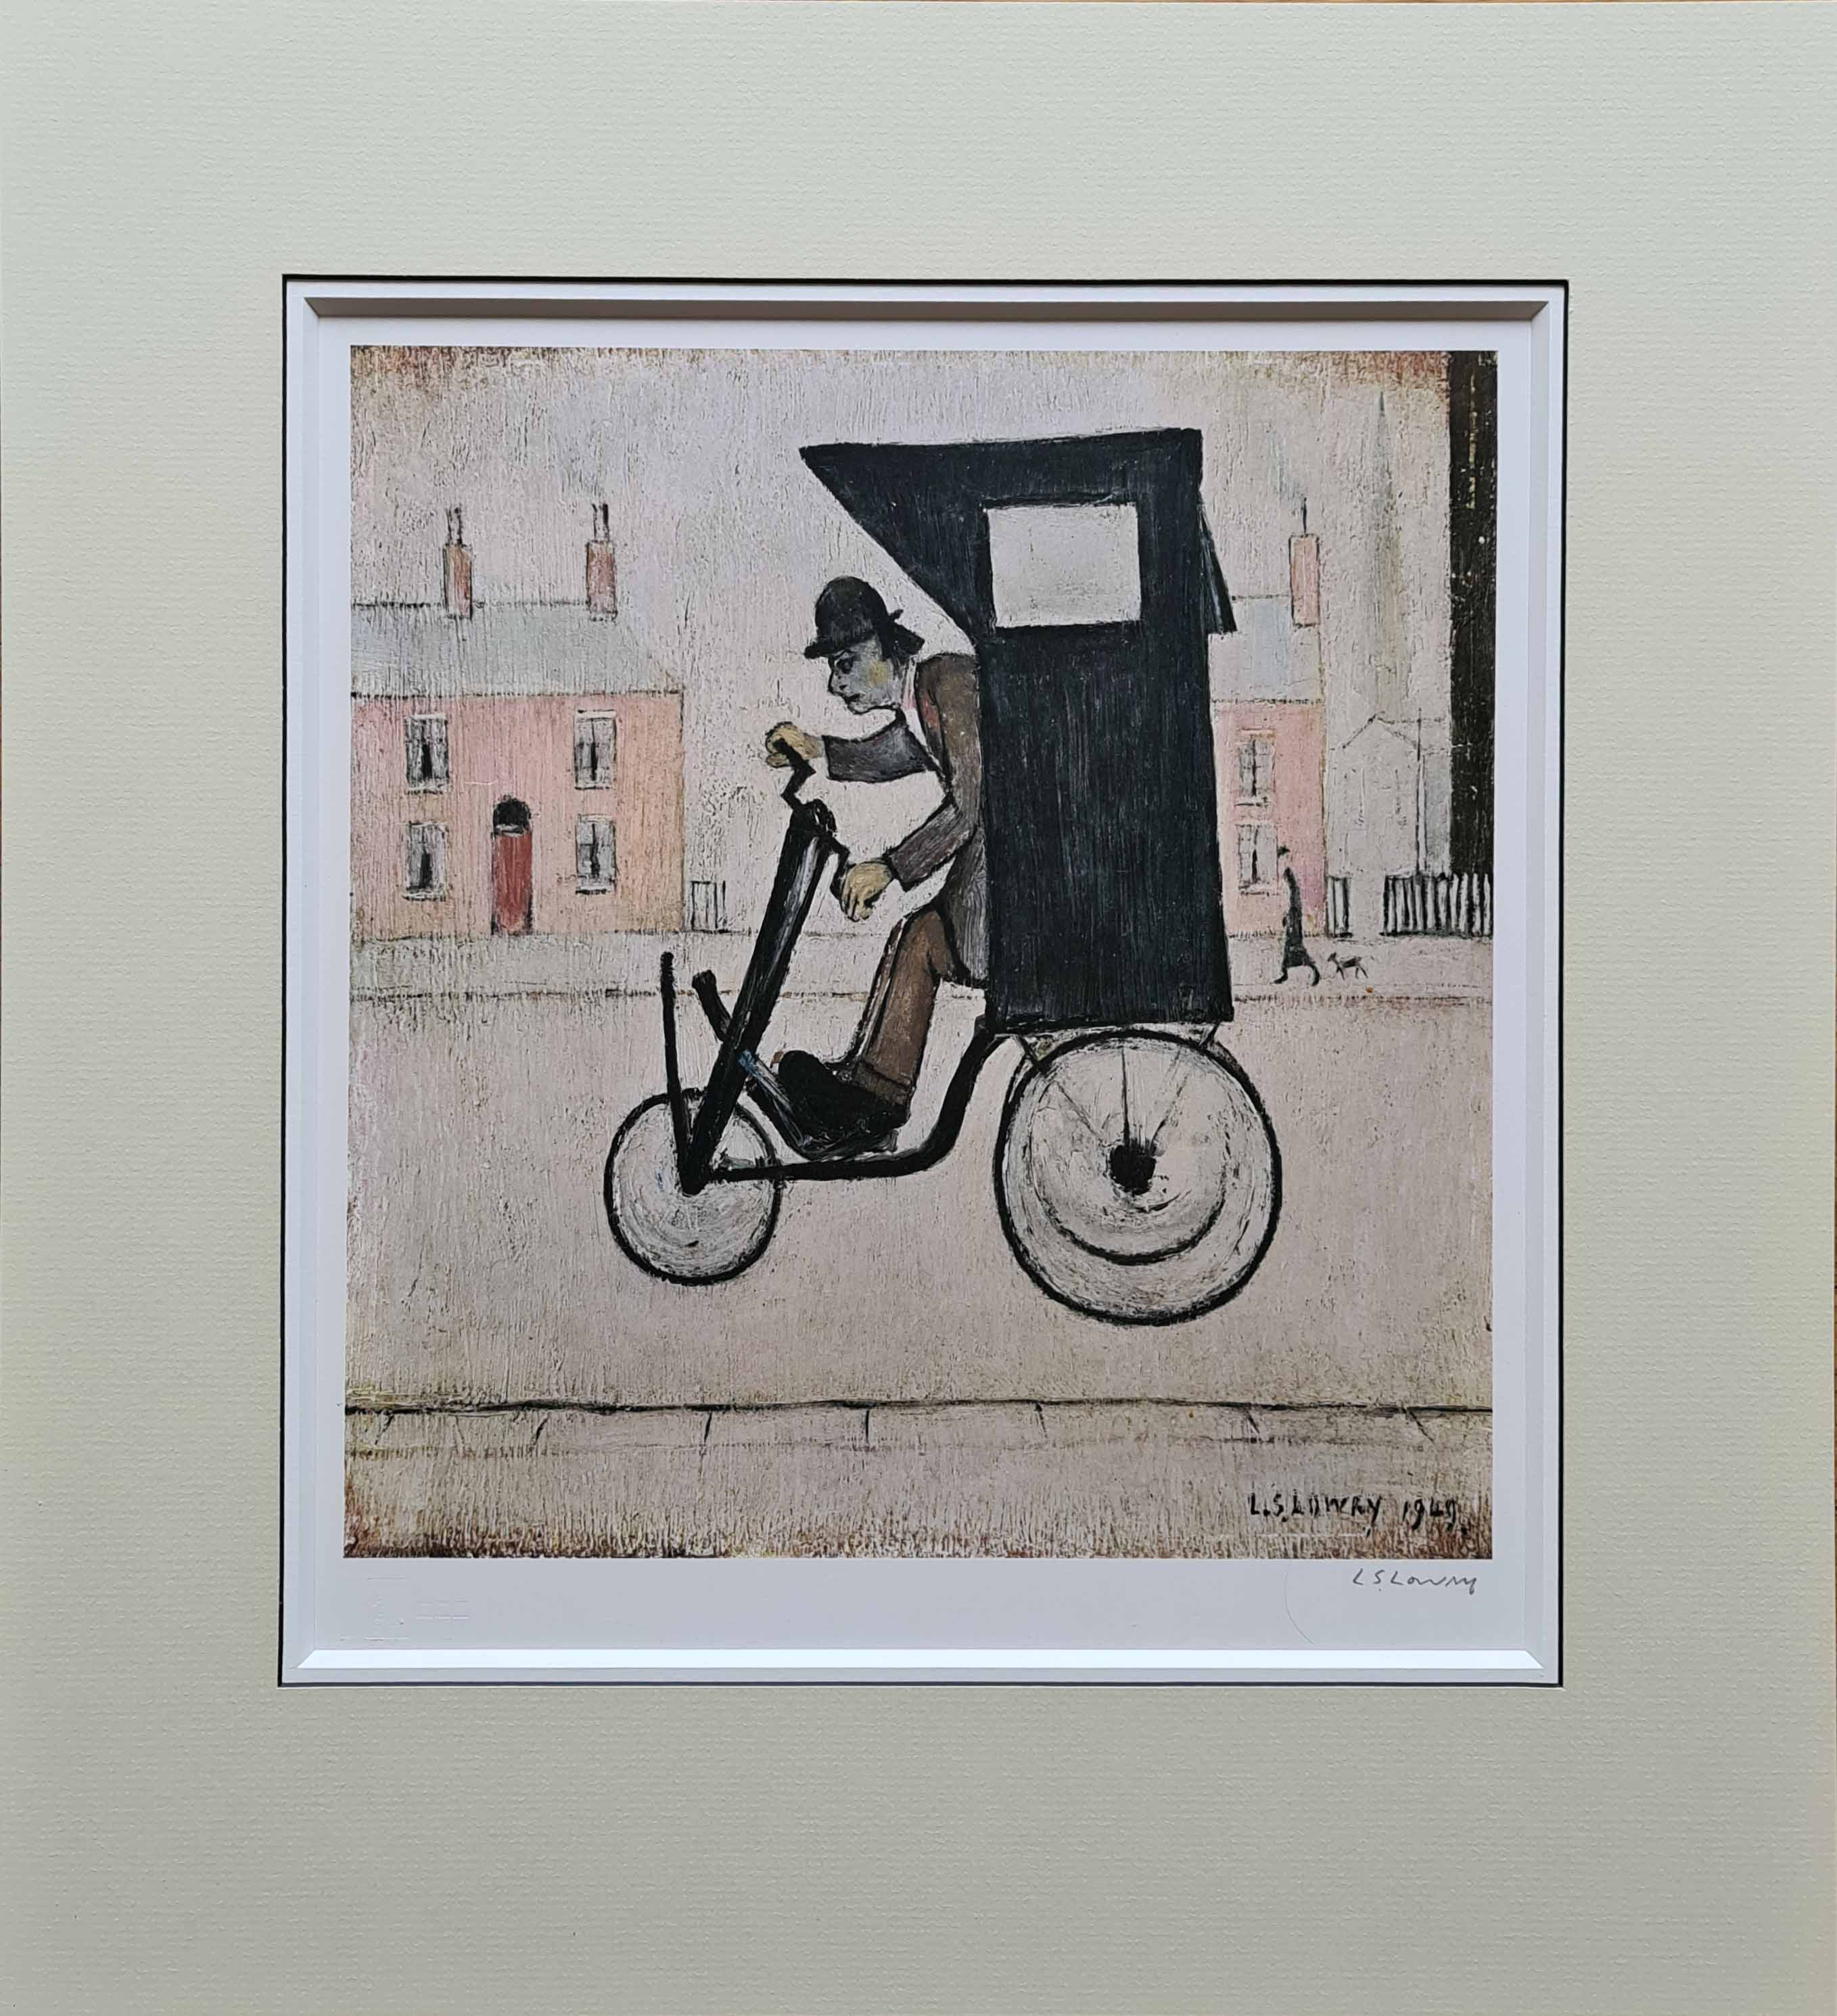 lowry The Contraption, signed print lslowry